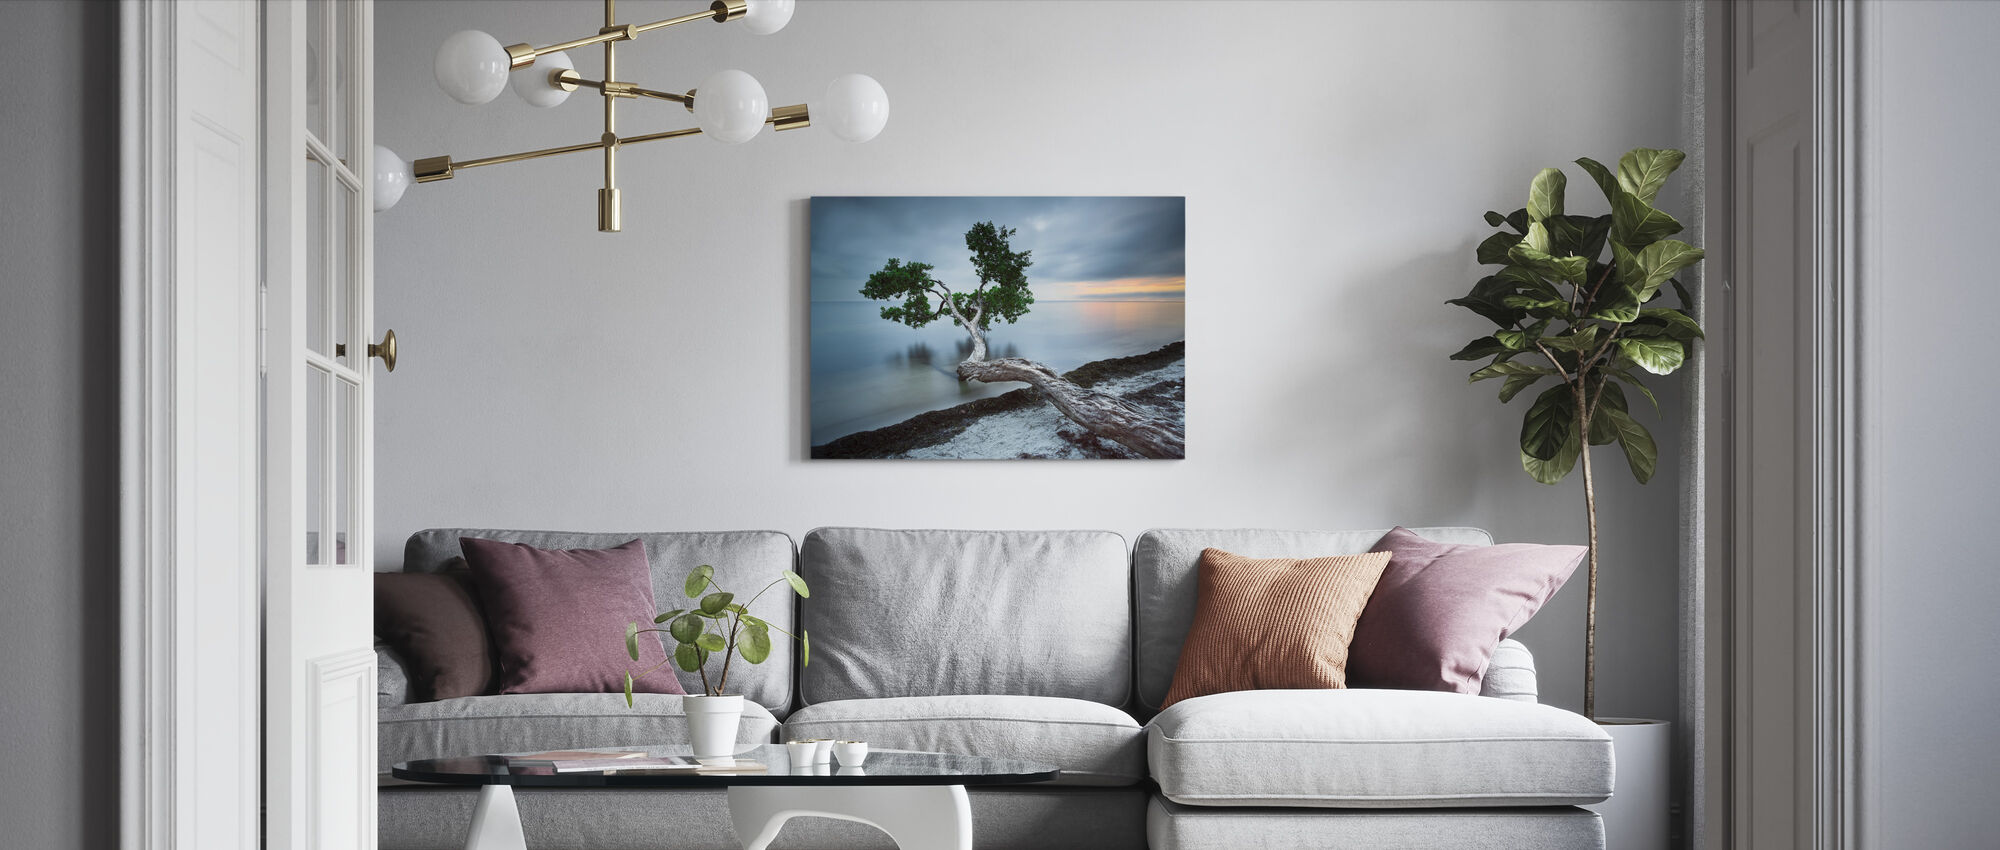 Reach Out - Canvas print - Living Room